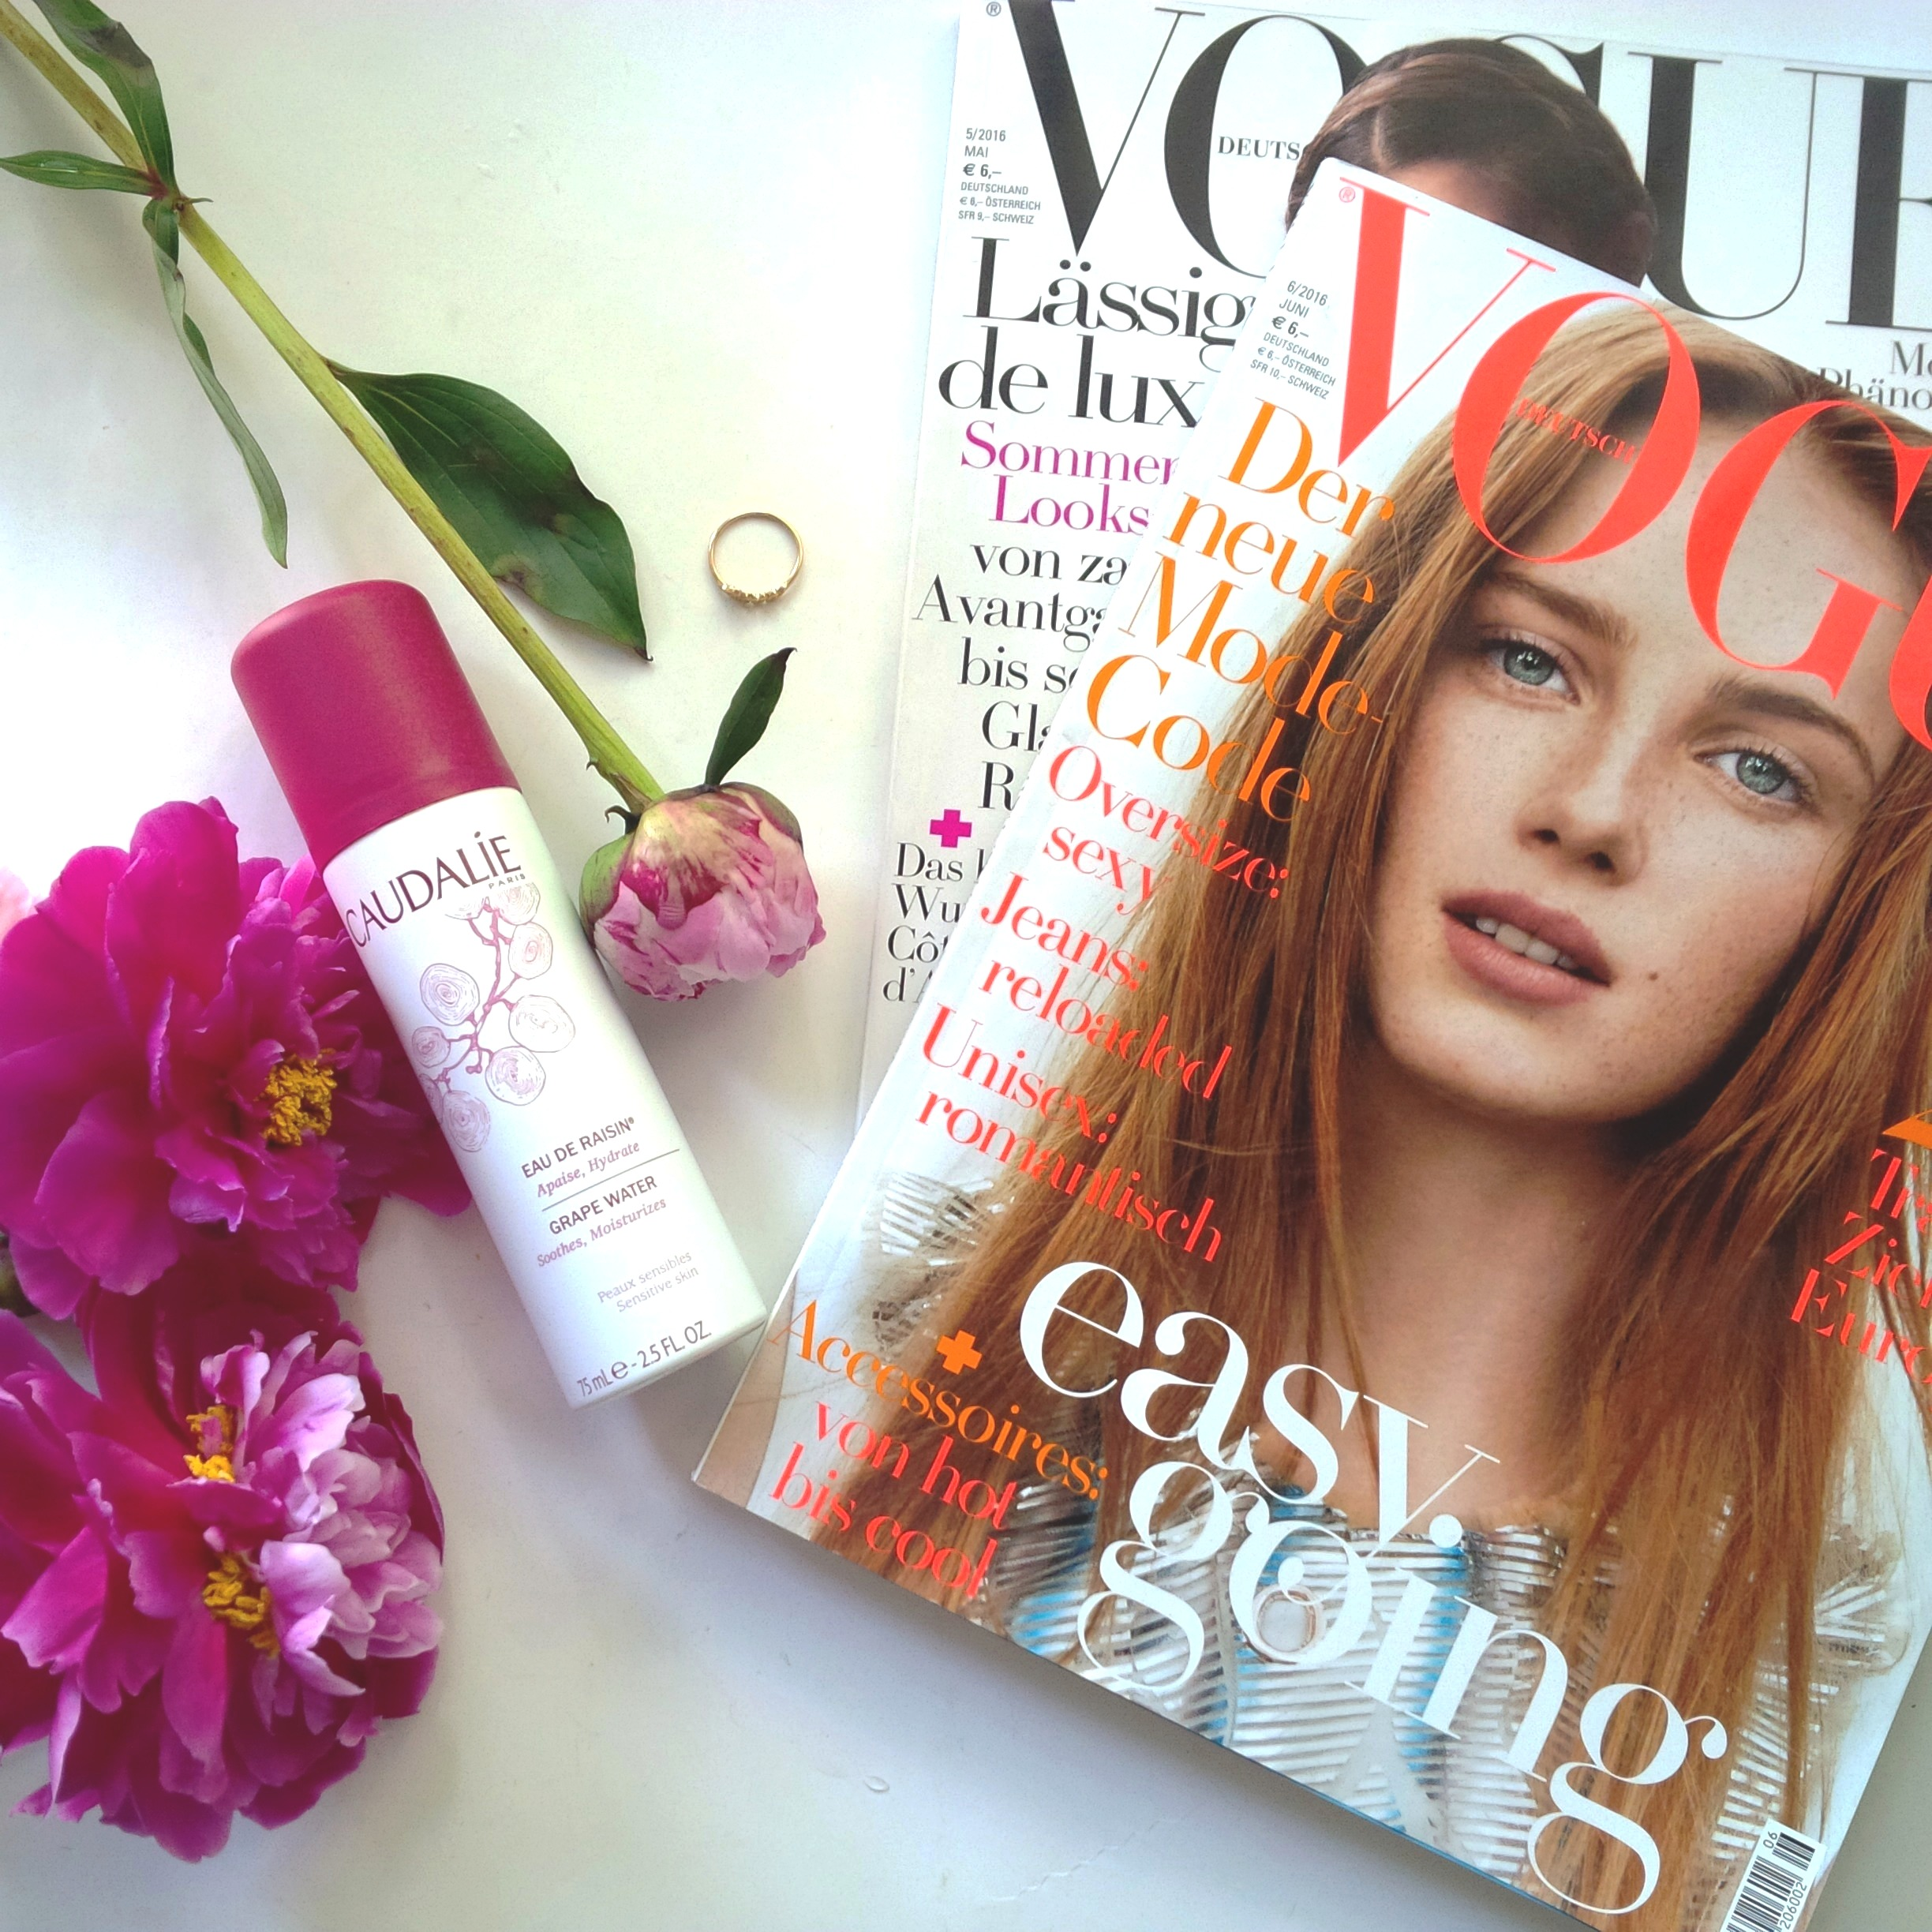 Liebe Woche Sonntags Favoriten. Paris. oui oui. Caudalie Eau de Raisin. love Ring. VOGUE Studentenabo. Peonies (2).jpg